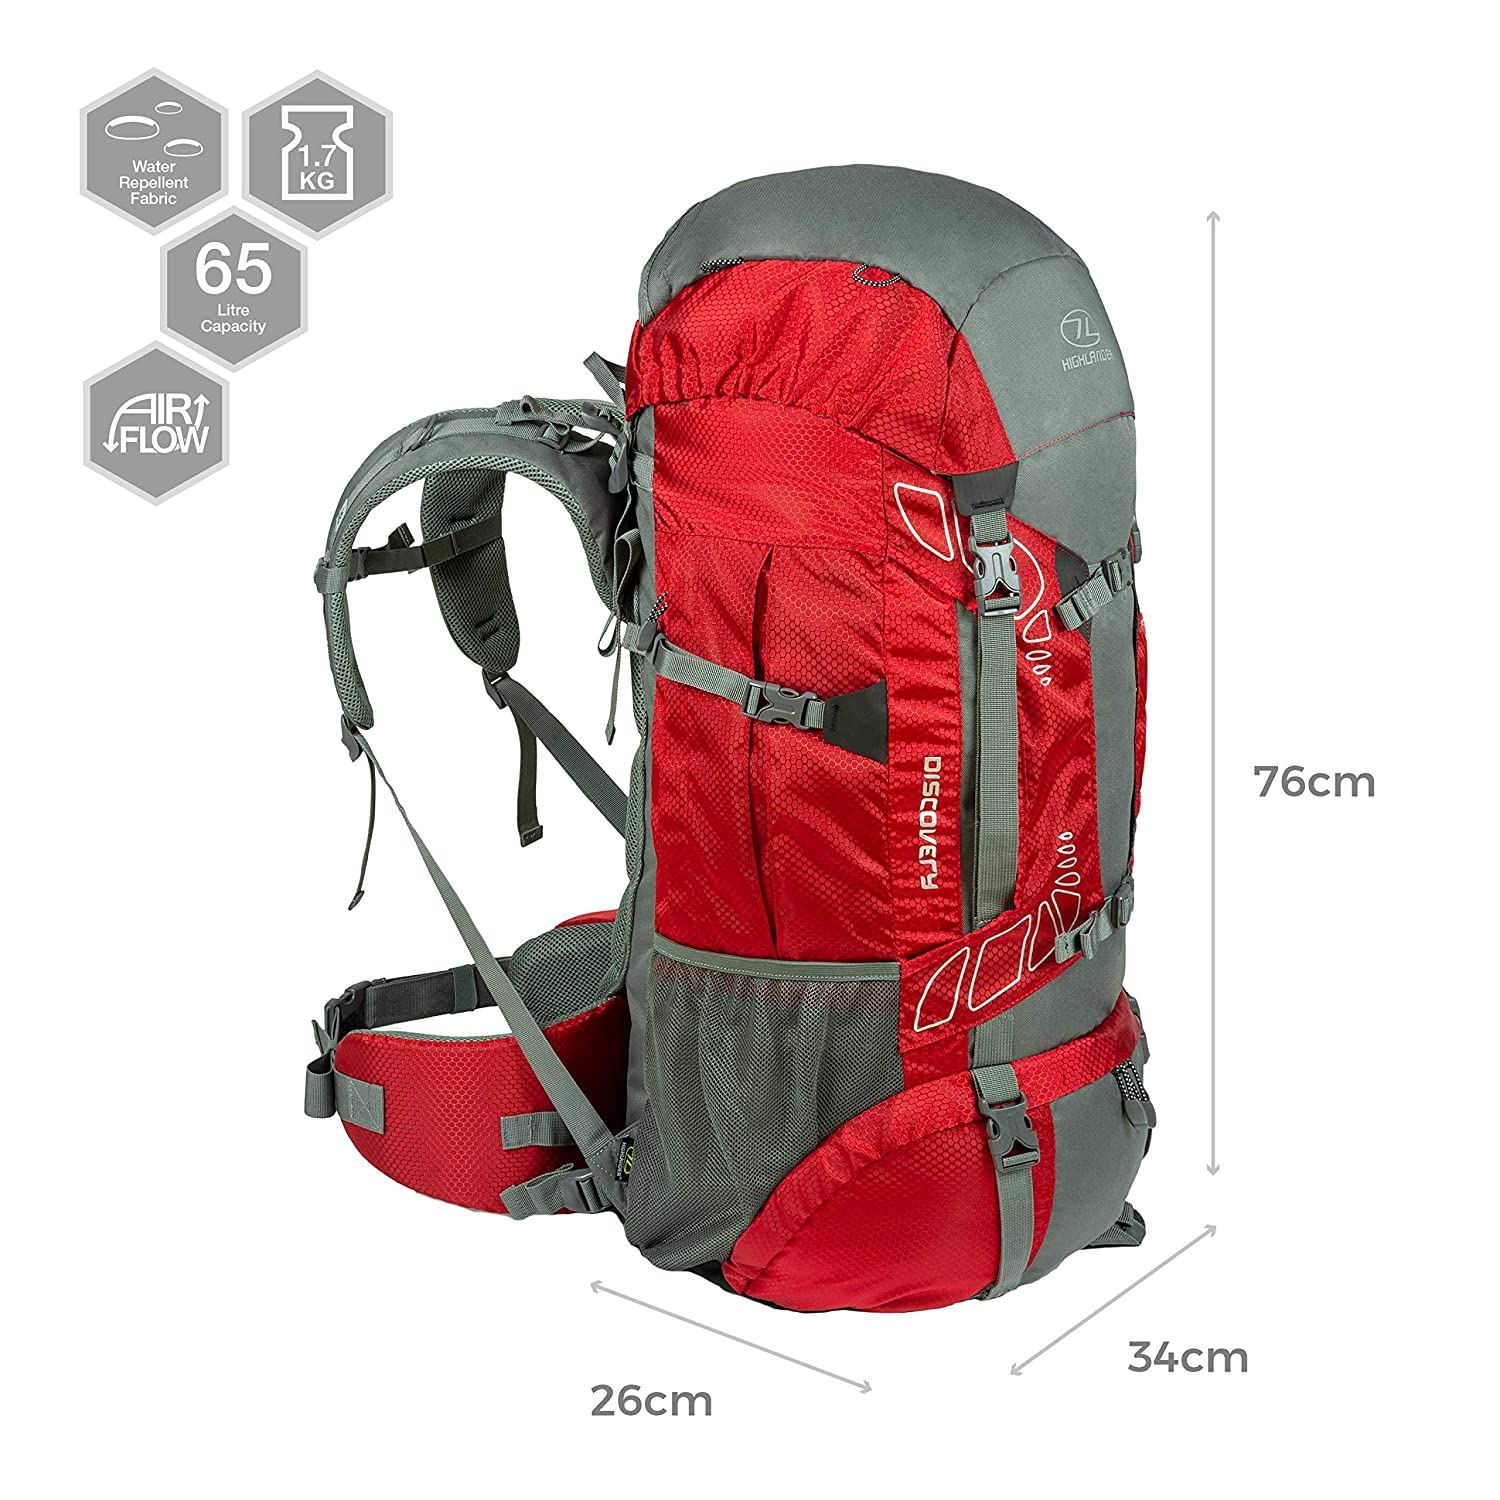 Camping and D of E Travelling Ideal for Walking Highlander 45L Discovery Rucksack Lightweight Hiking Backpack with Waterproof Cover Trekking